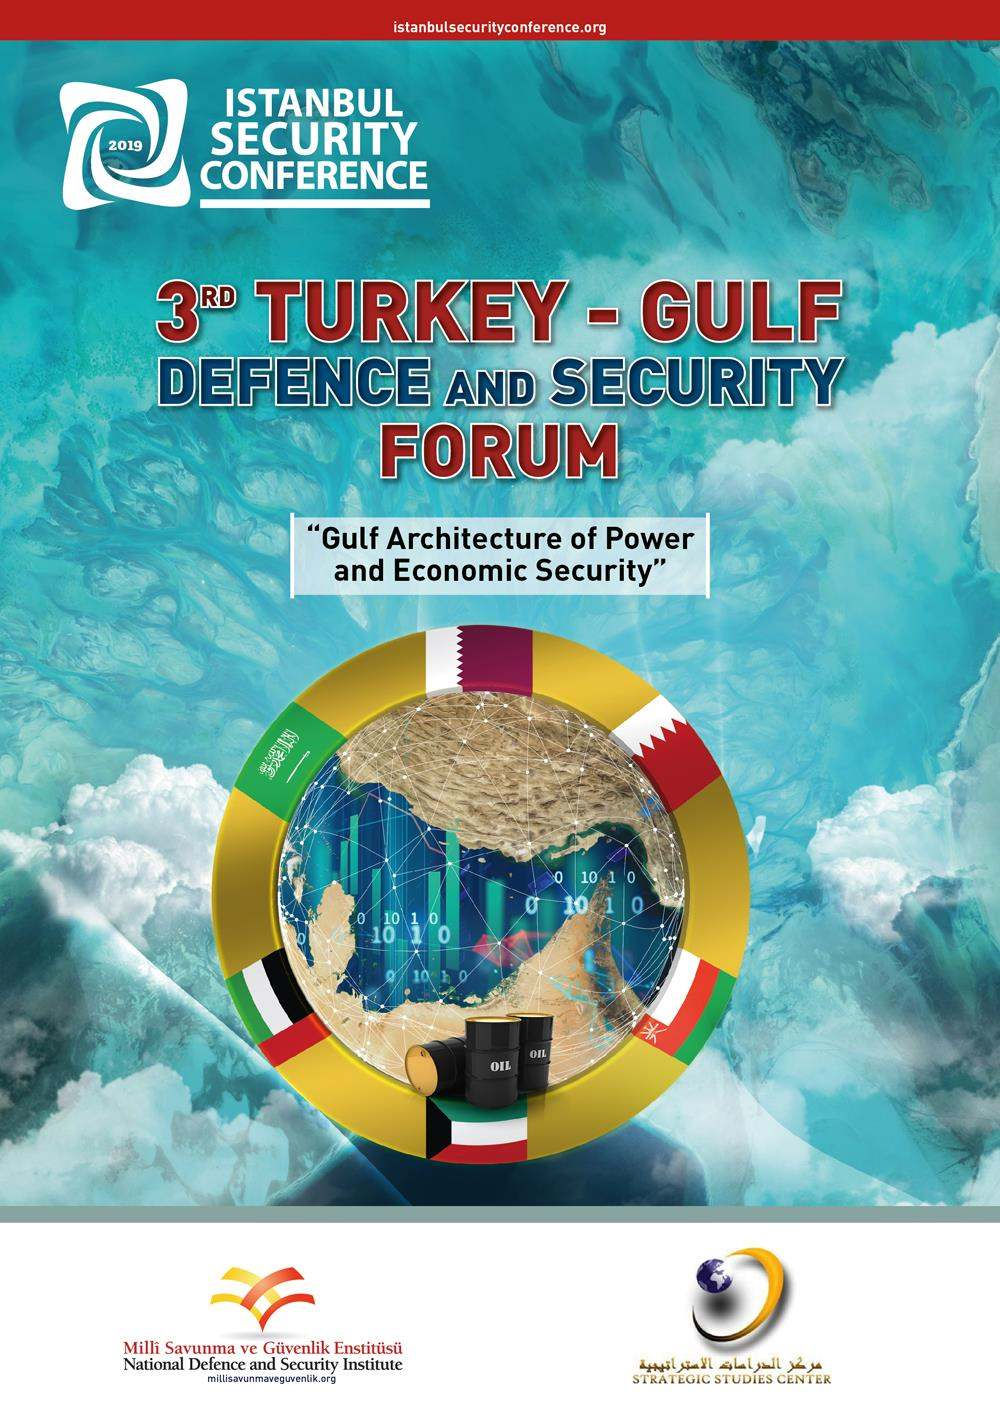 3rd Turkey - Gulf Defense And Security Forum | Preparatory Meeting